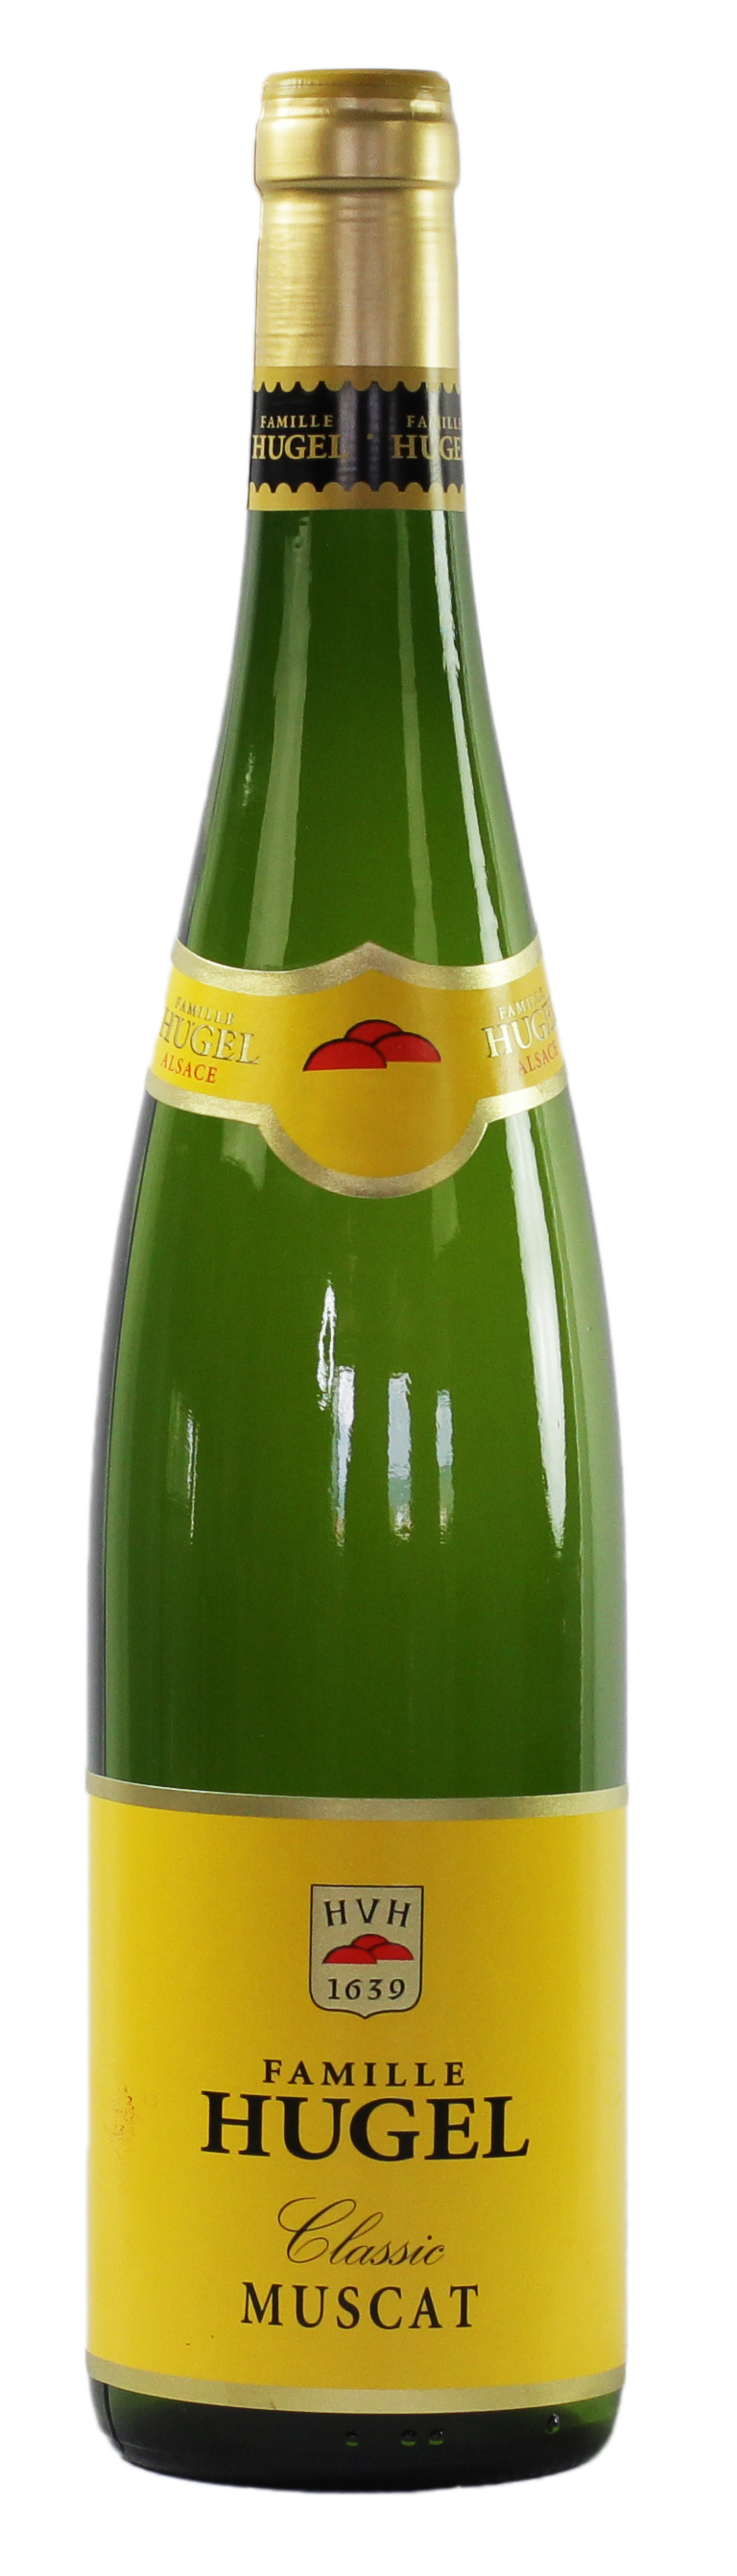 Famille Hugel Muscat, Classic